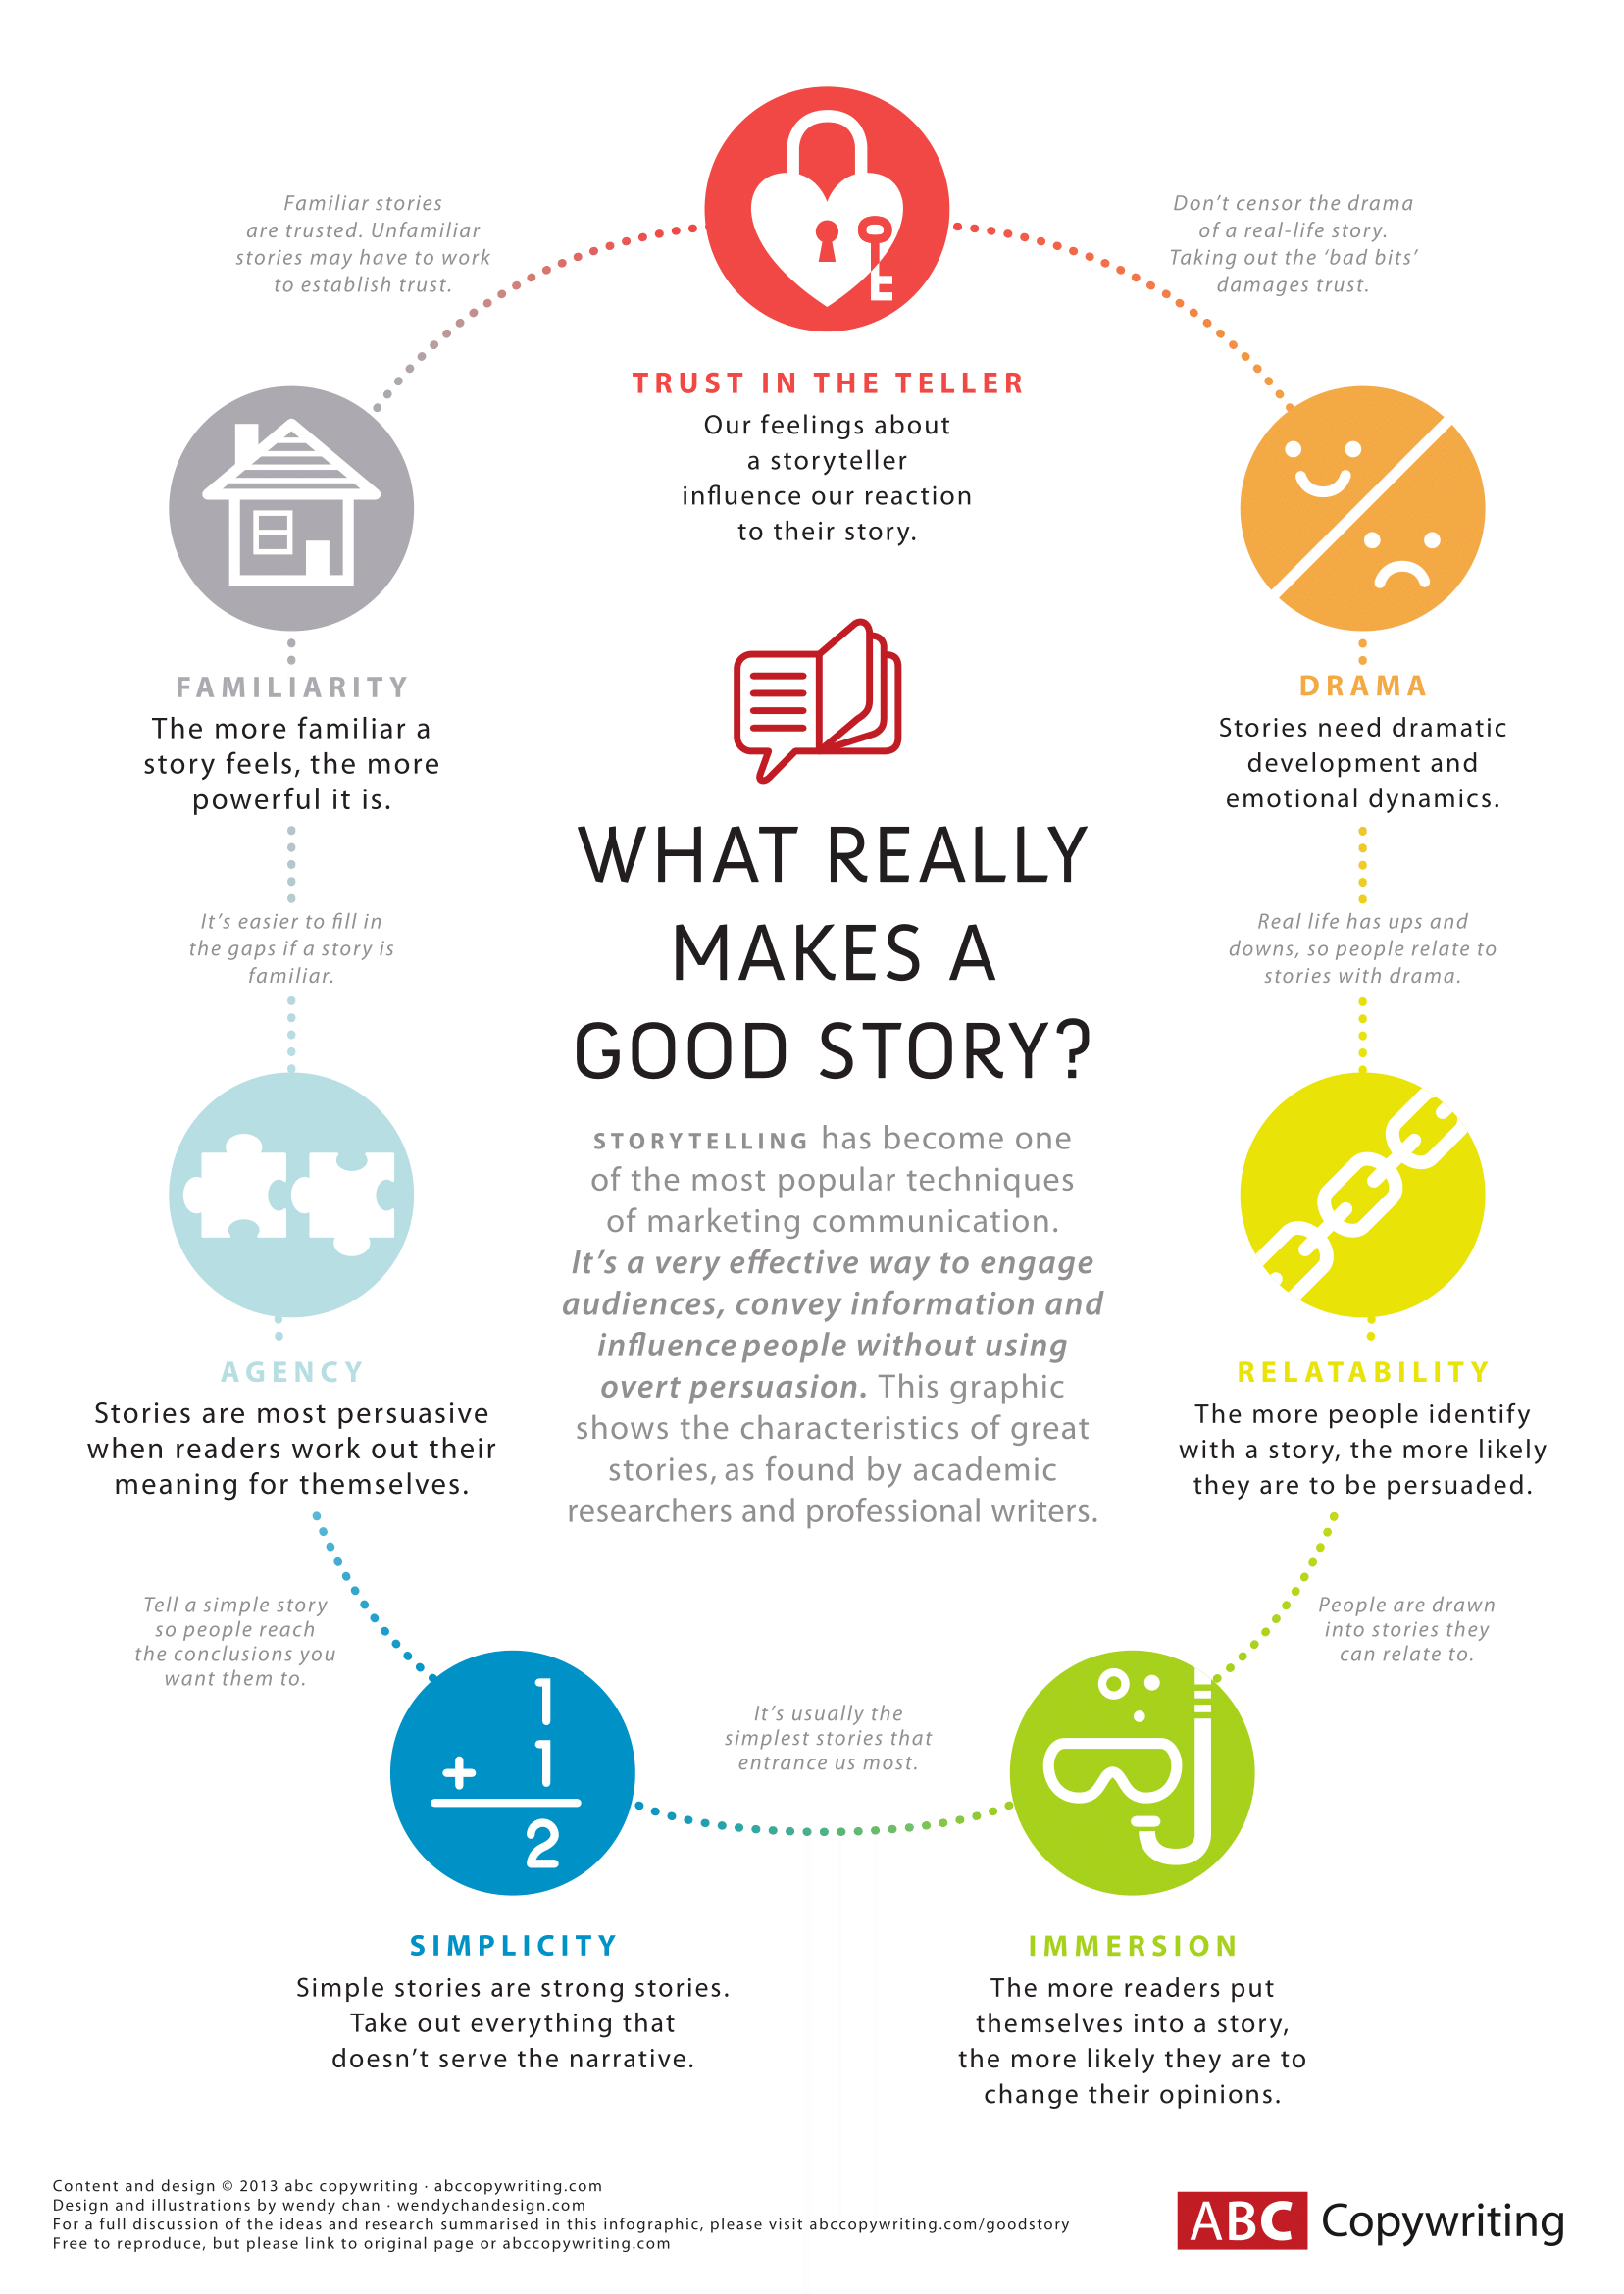 What-really-makes-a-good-story-infographic